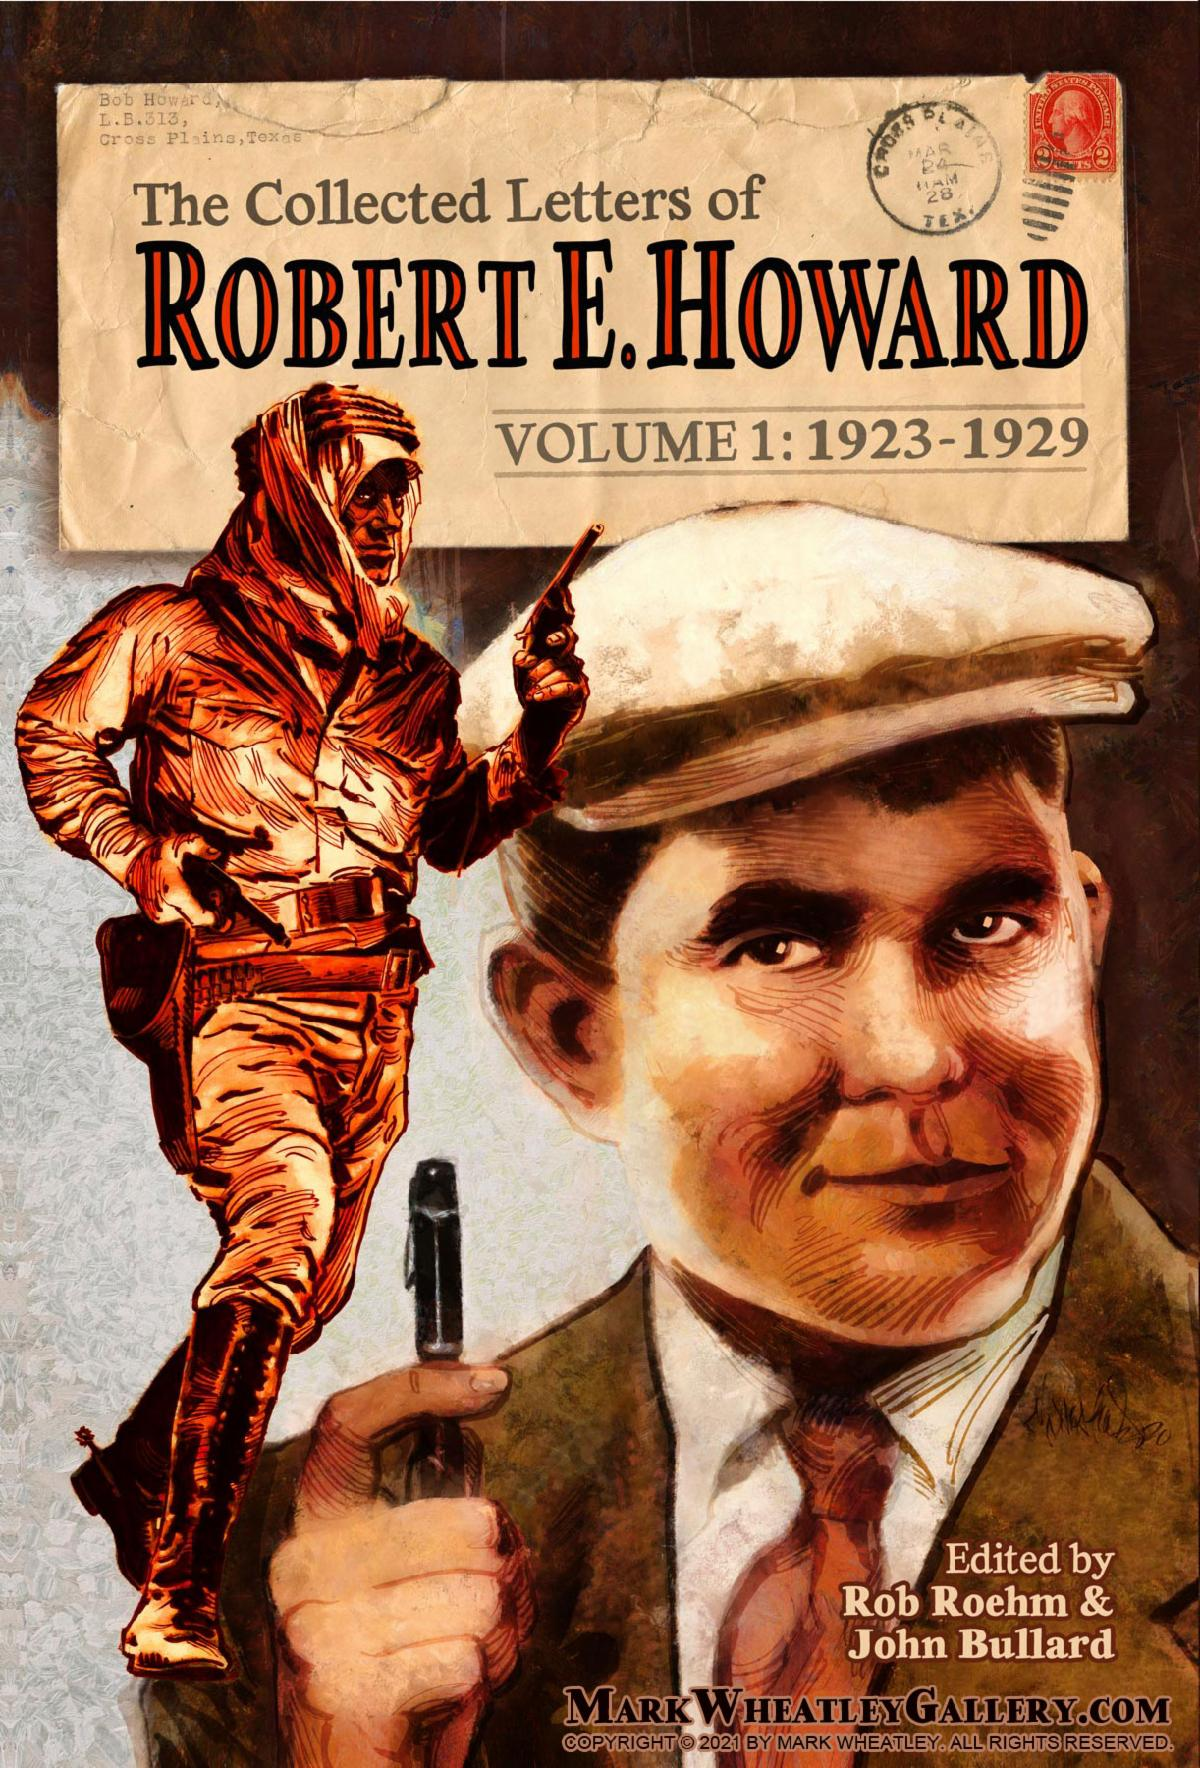 The Collected Letters of Robert E. Howard by Mark Wheatley